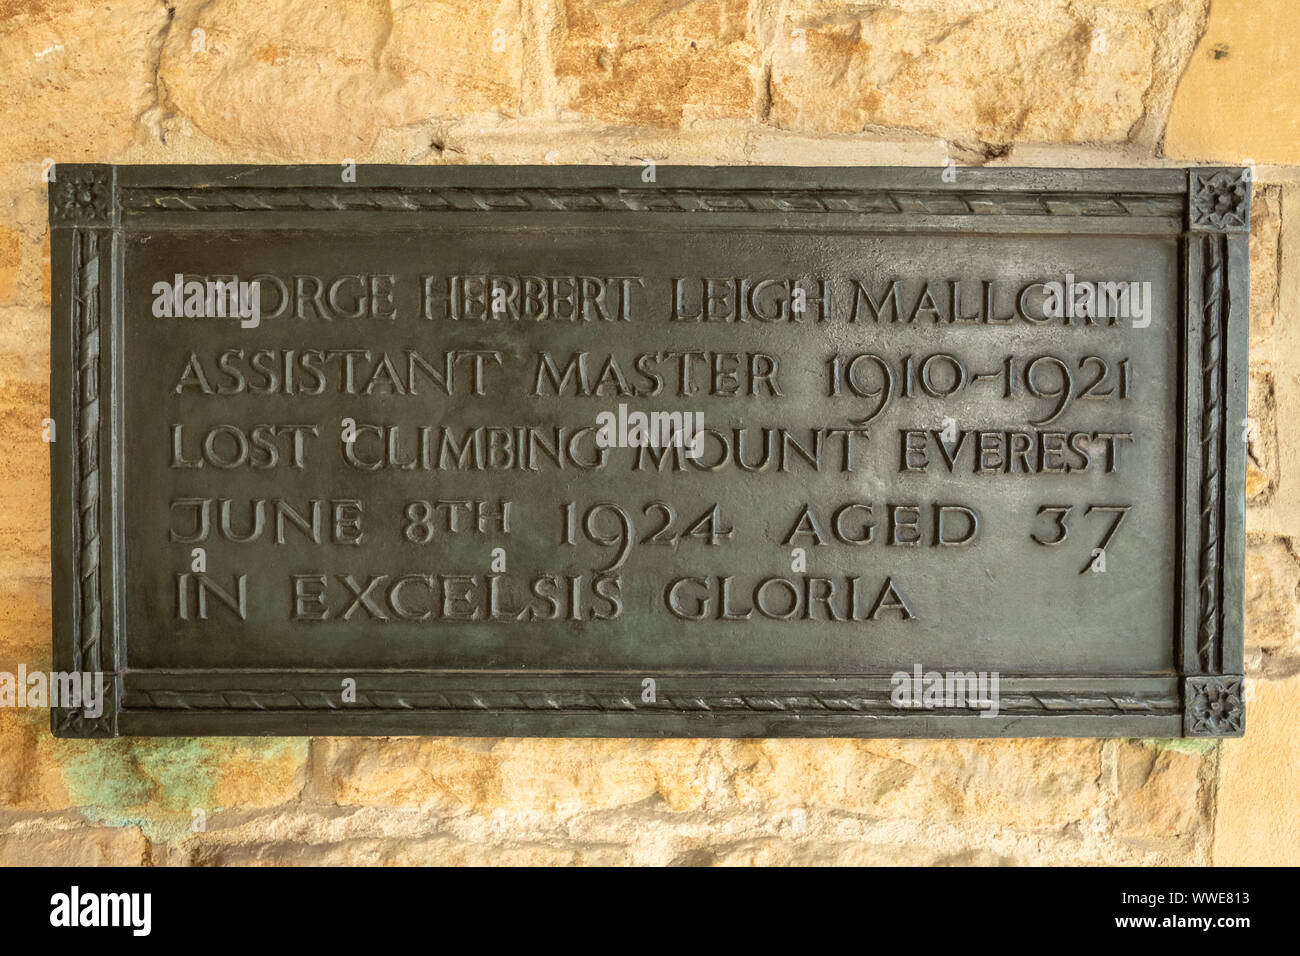 memorial-to-mountaineer-george-mallory-assistant-master-at-charterhouse-school-surrey-uk-killed-while-climbing-mount-everest-in-1924-WWE813.jpg